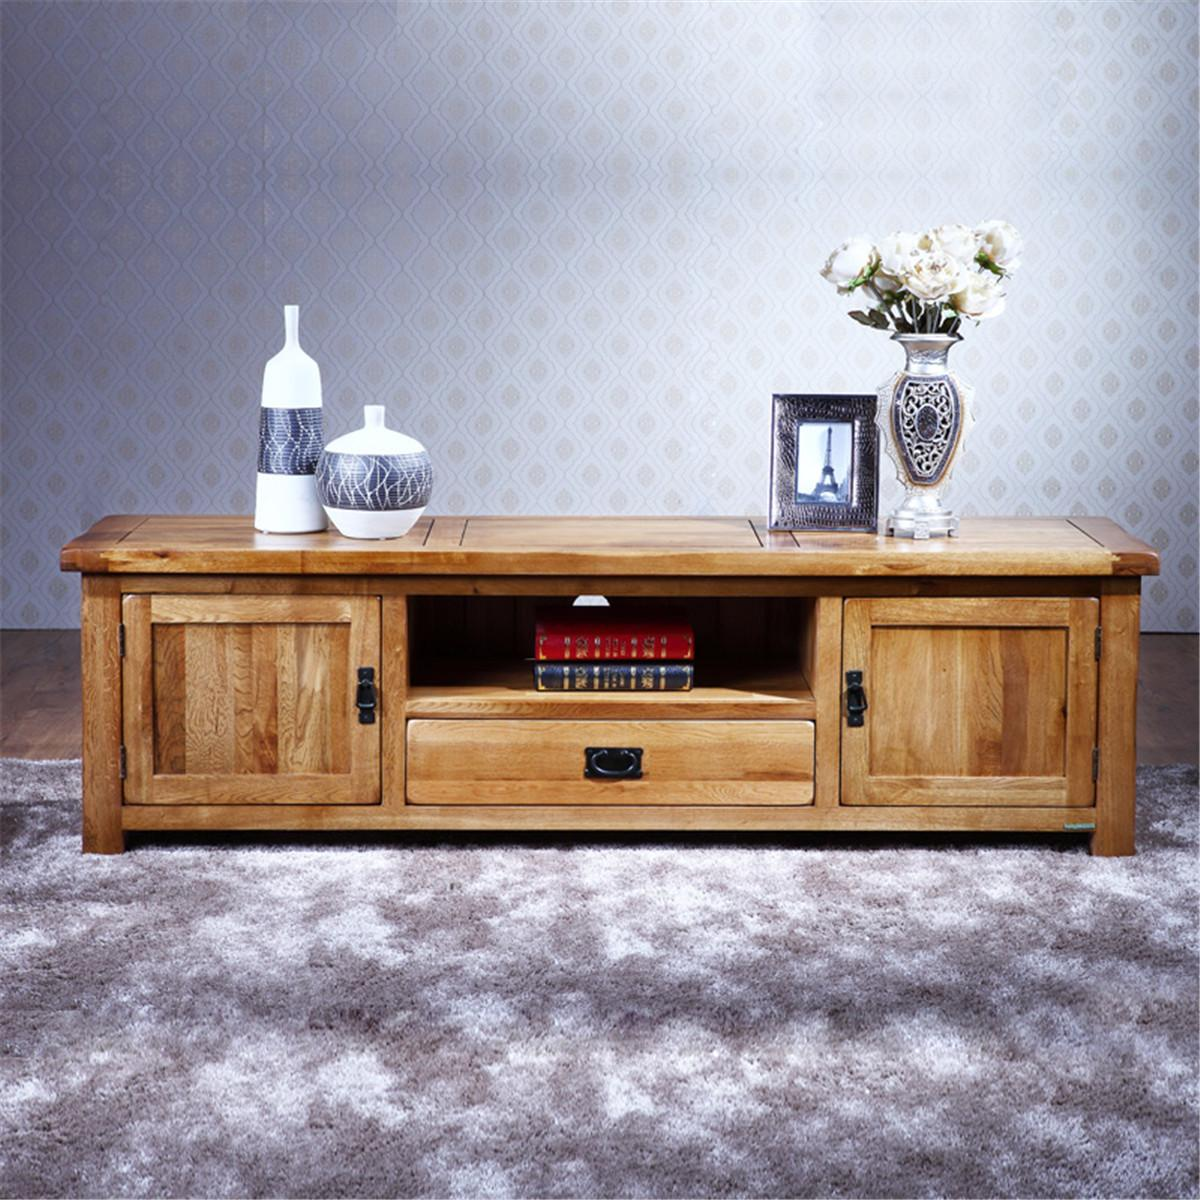 Tv Table With Storage Part - 37: 100% Pure Solid Wood TV Stand Oak TV Stand Media Console Table Soild Wood TV  Storage Cabinet Unit